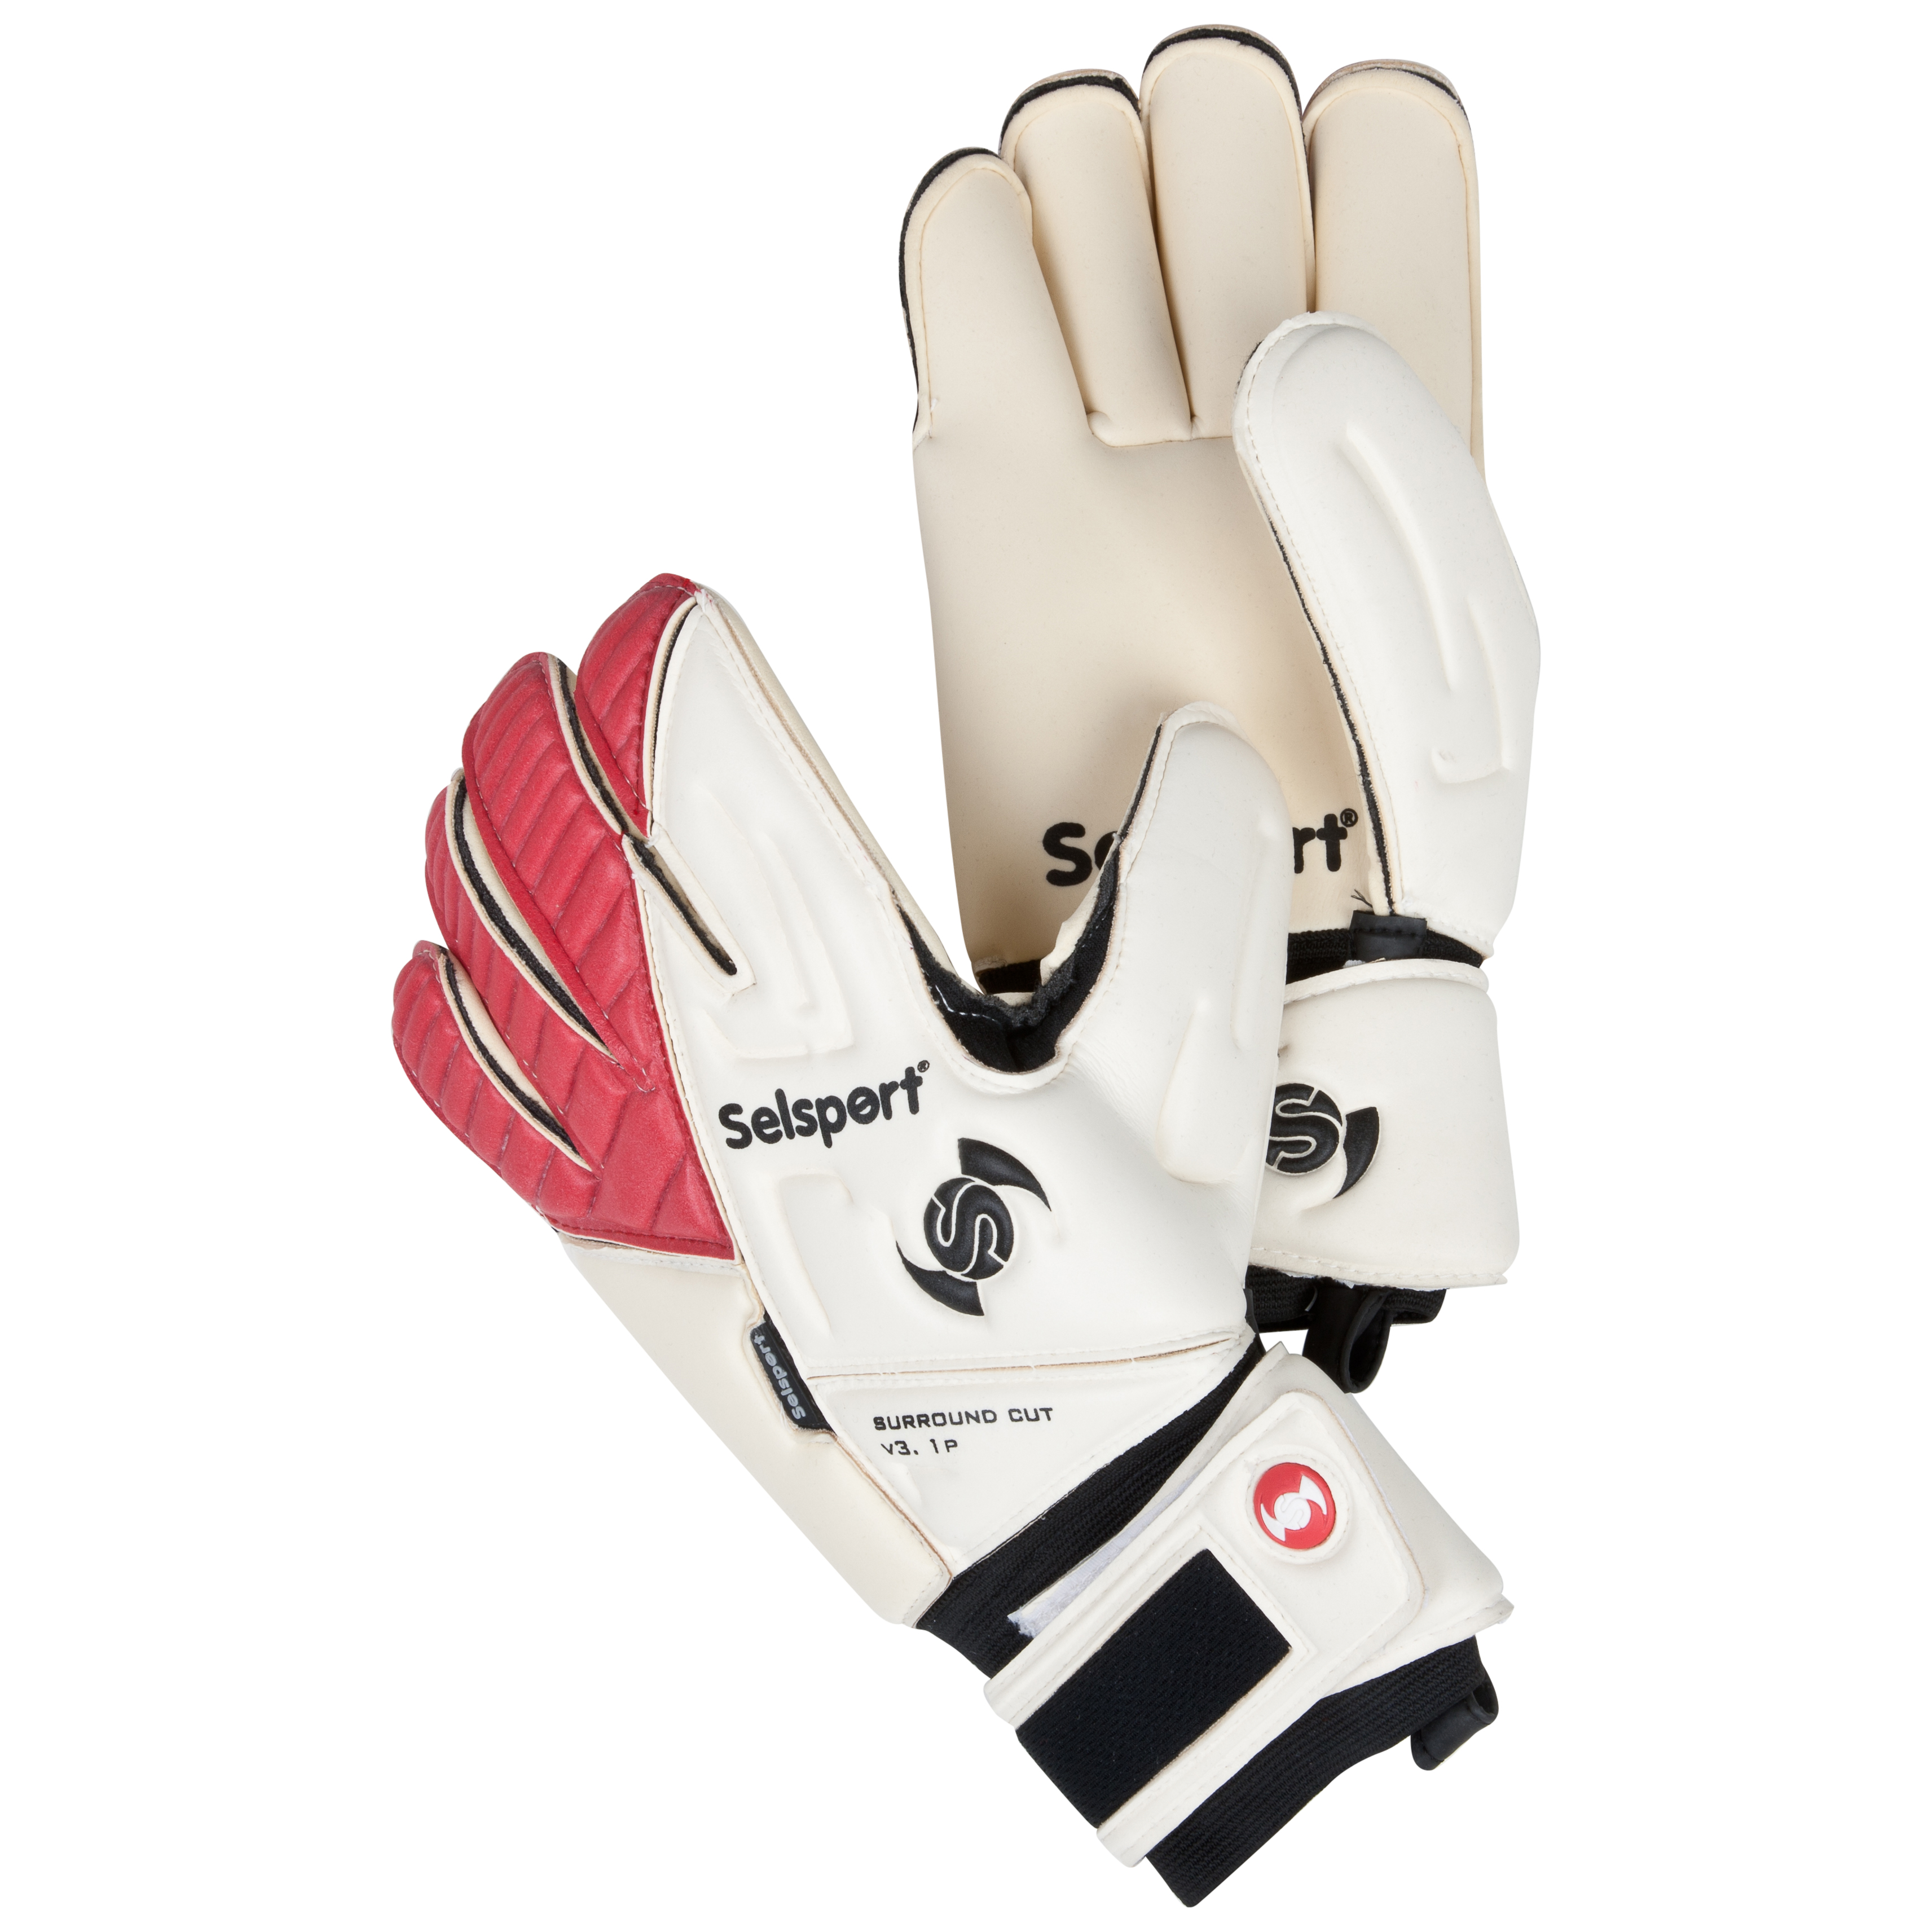 Selsport Absorb 3 Goalkeeper Gloves - White/Red